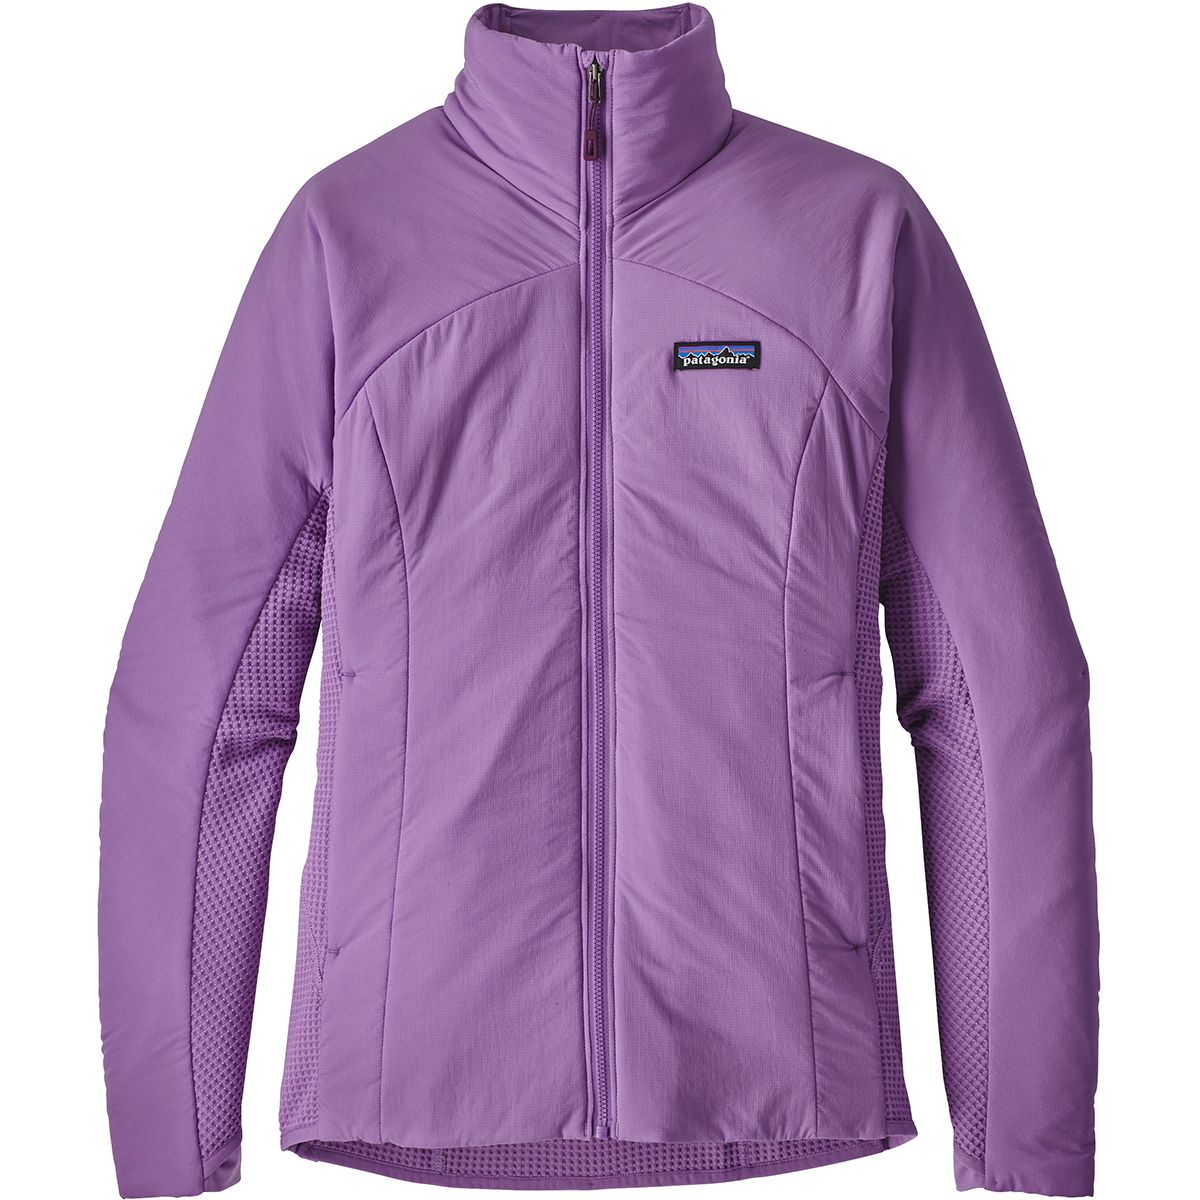 Patagonia Damen Nano-Air Light Hybrid Jacke (Größe L, Lila) | Isolationsjacken > Damen